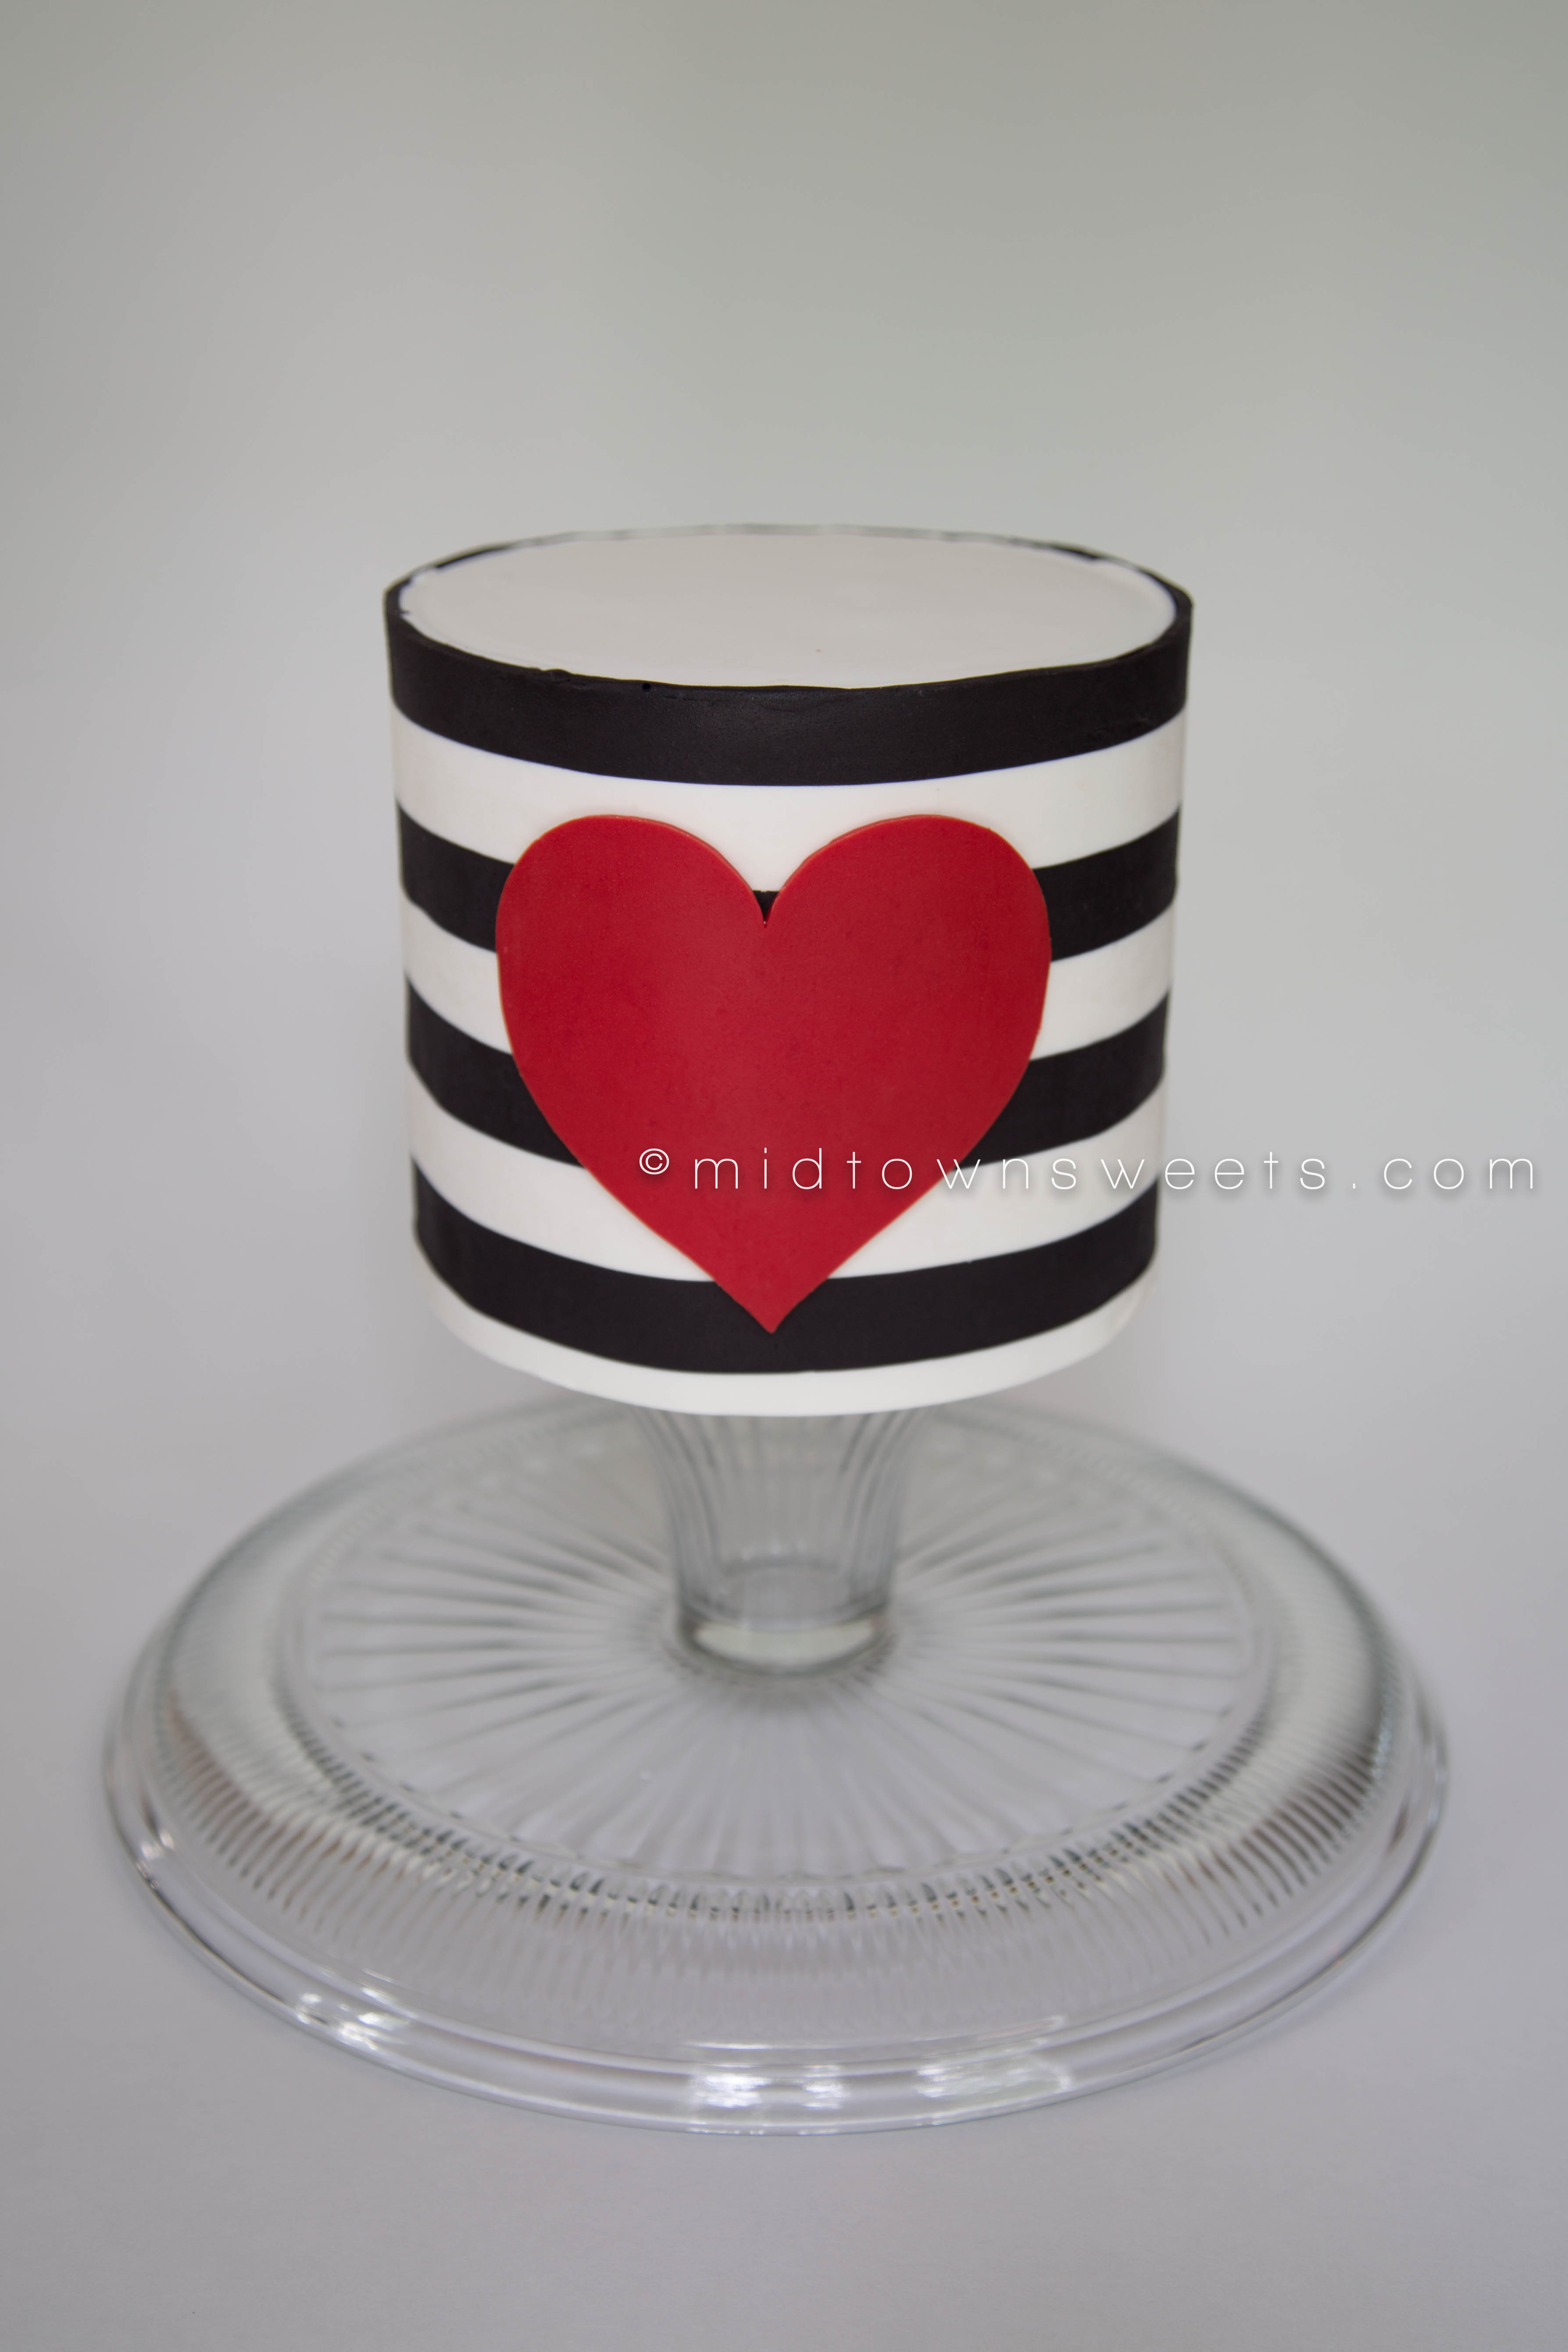 Midtown Sweets Black Amp White Striped Cake